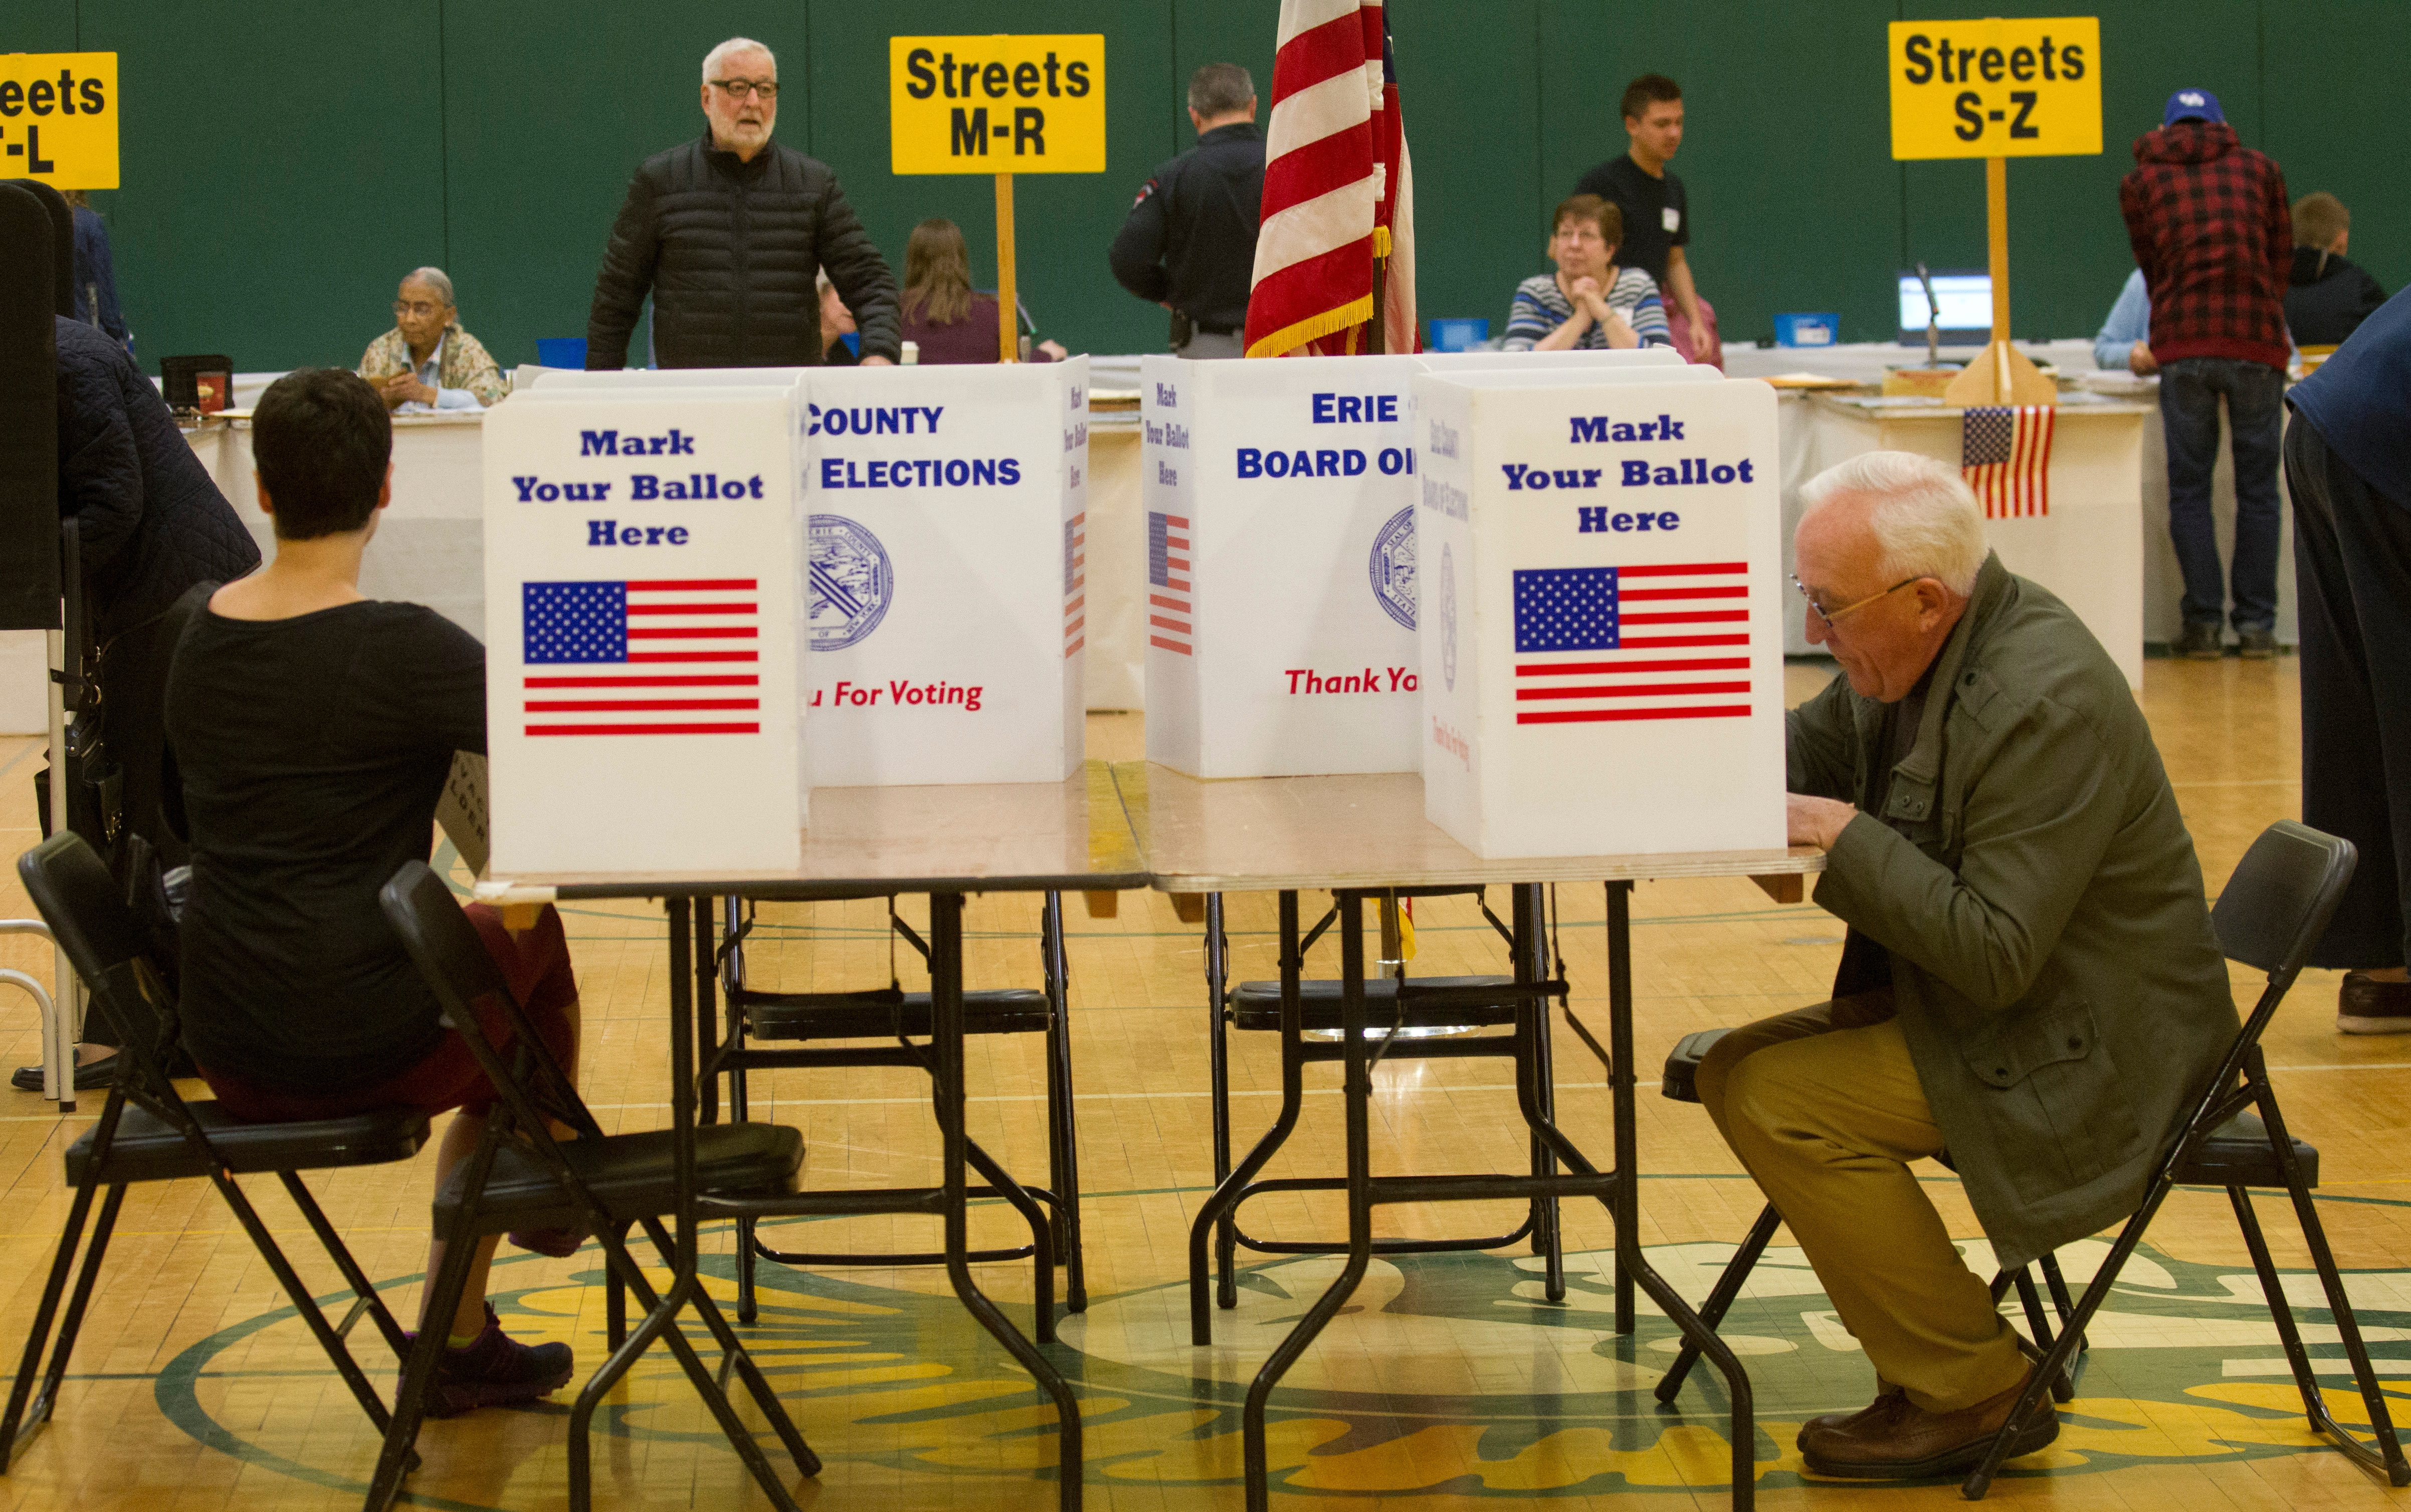 Voters at last year's school election in Williamsville North High School, in Williamsville, N.Y., on Tuesday May 17, 2016.   (John Hickey/Buffalo News)